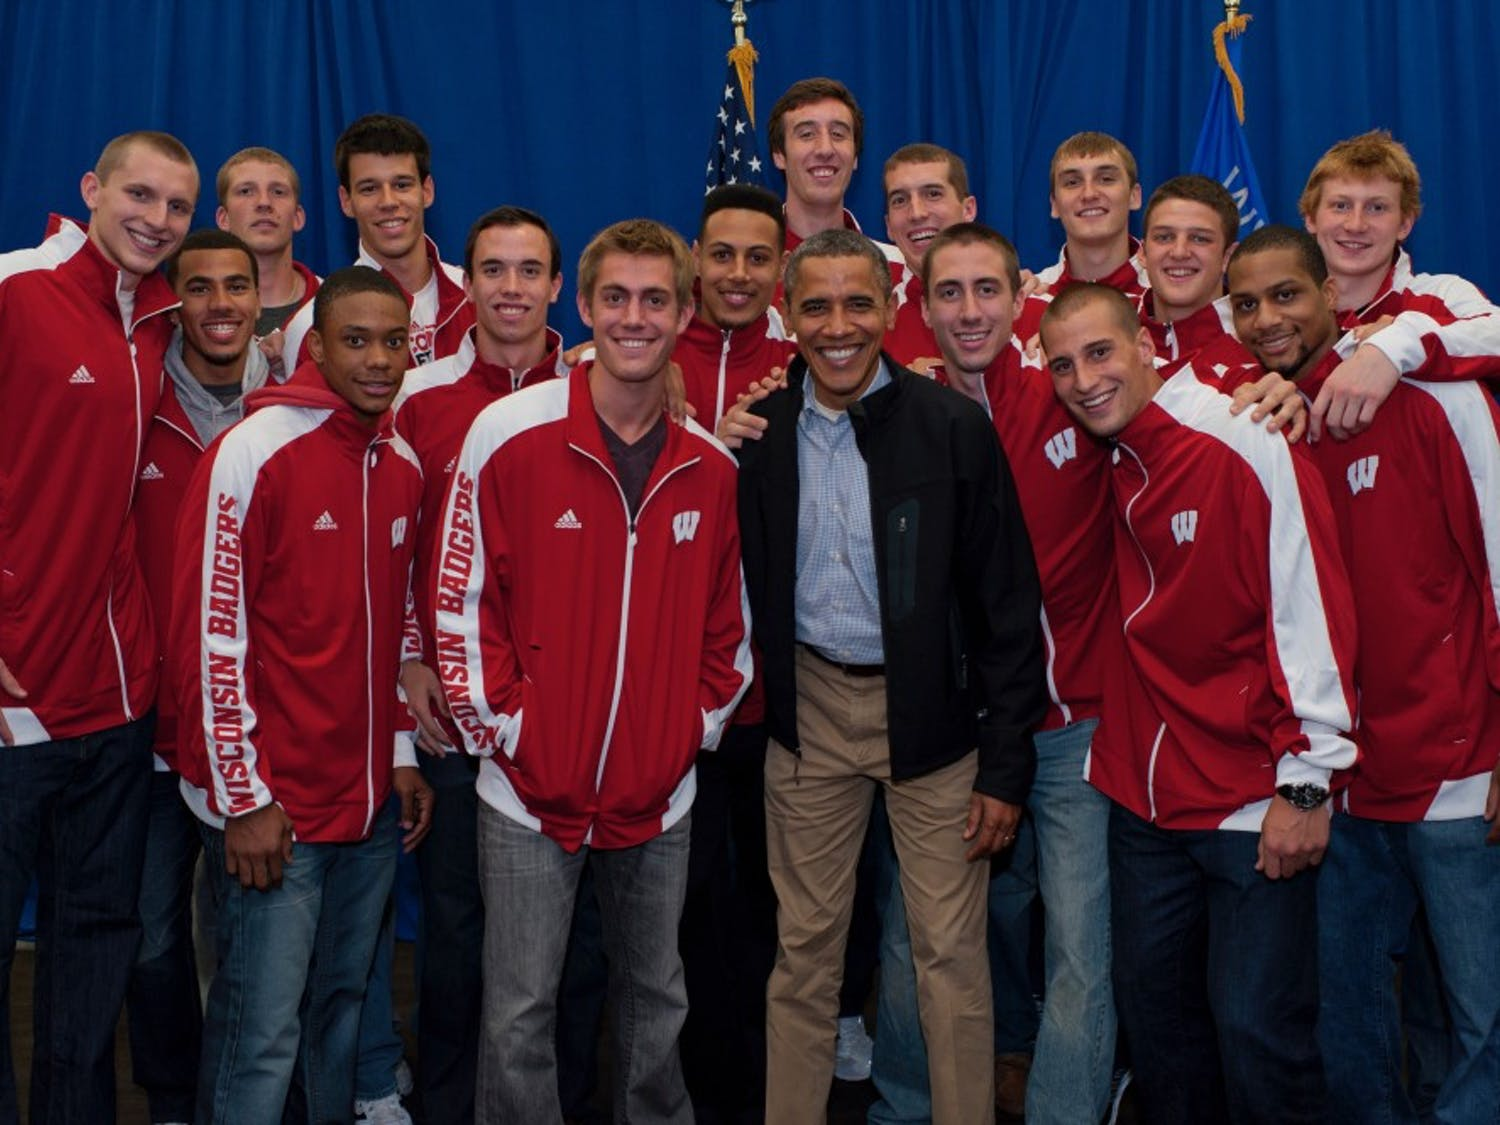 The 2012 basketball team poses for a picture with Obama before his speech on Bascom Hill.